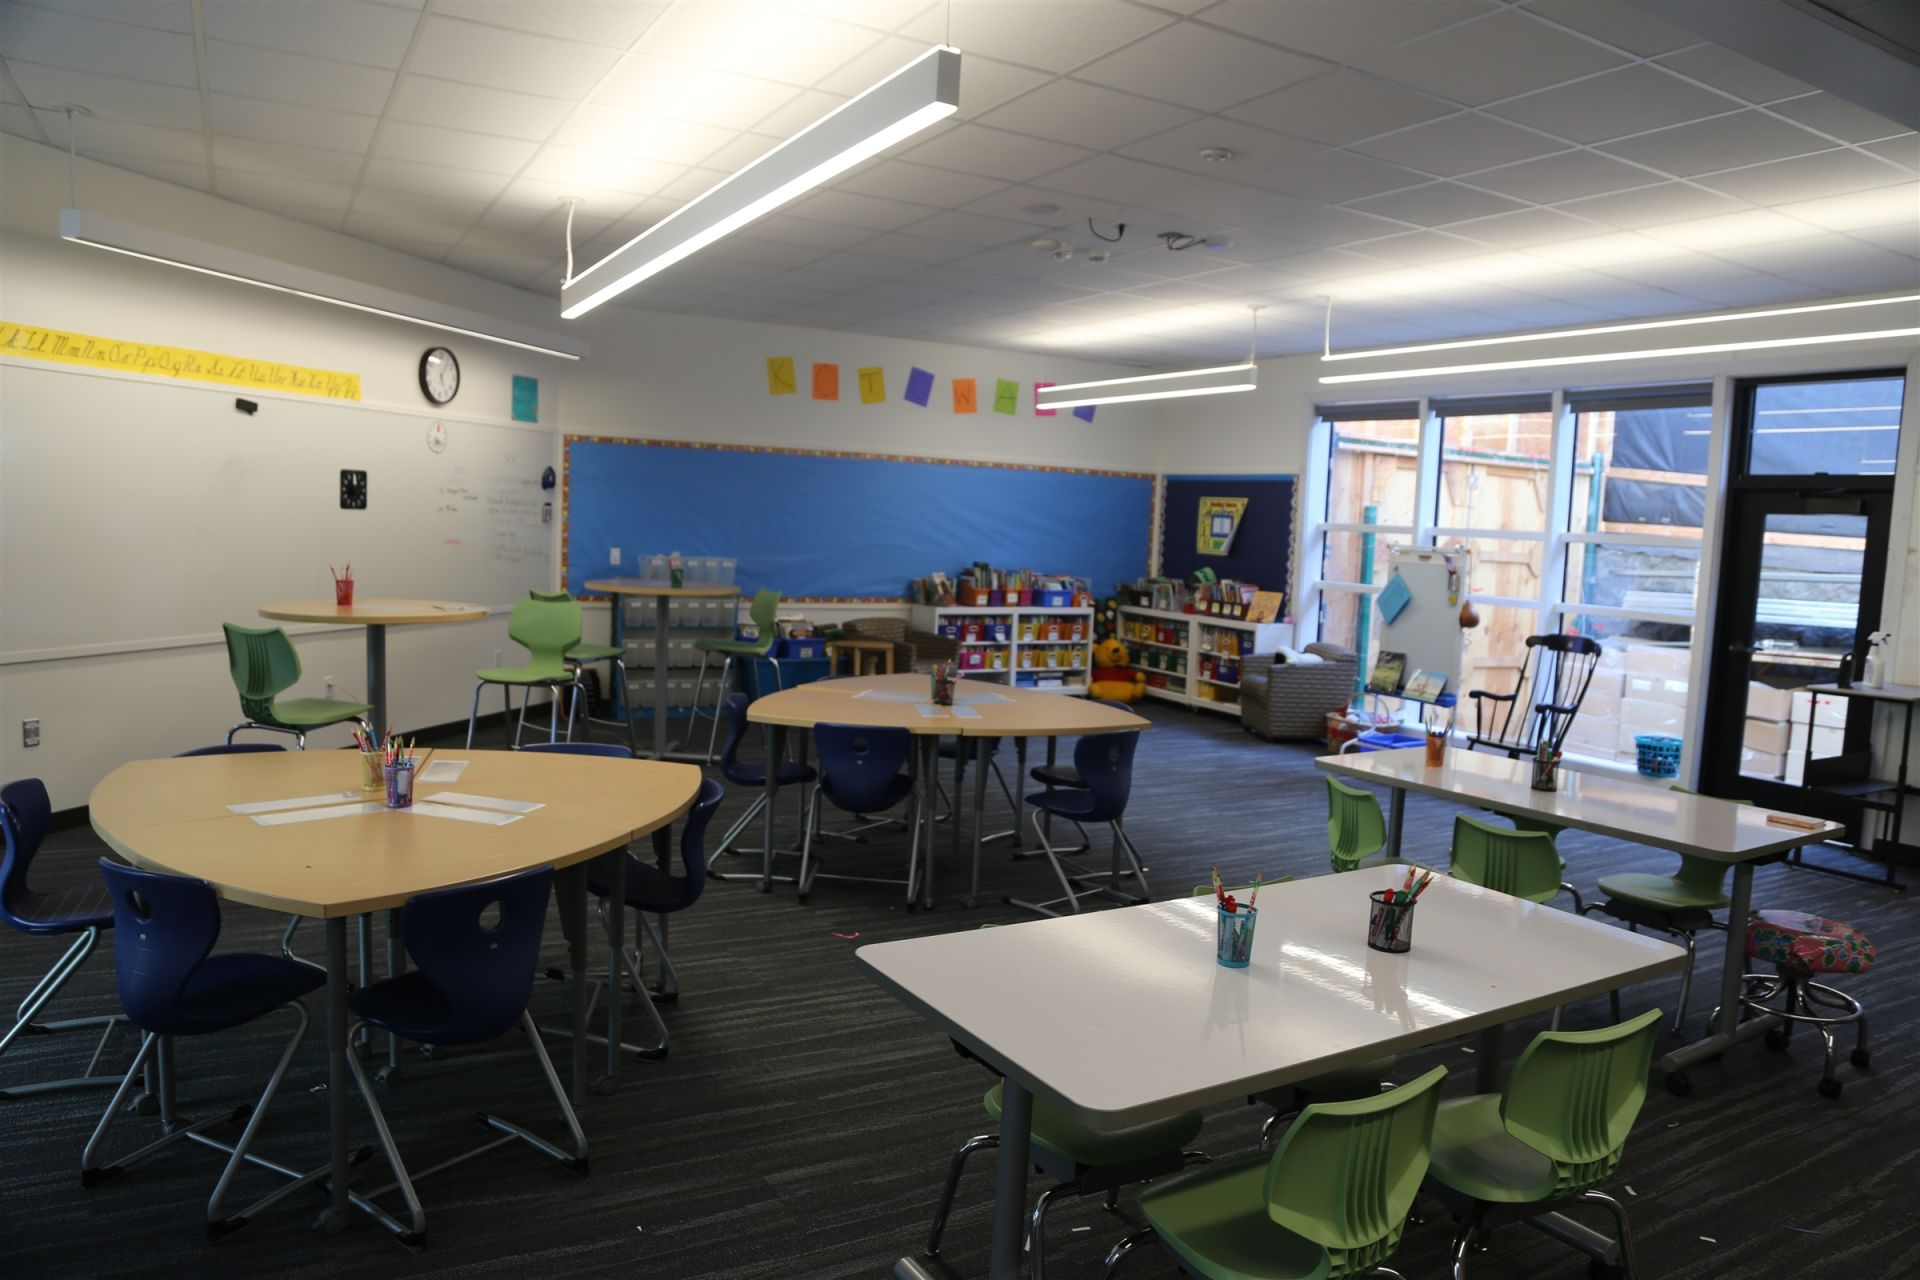 As of the 2018-19 school year, all Lower School classrooms are outfitted with flexible furniture, high-tech windows, updated utilities, and everything teachers and students need for project-based learning.